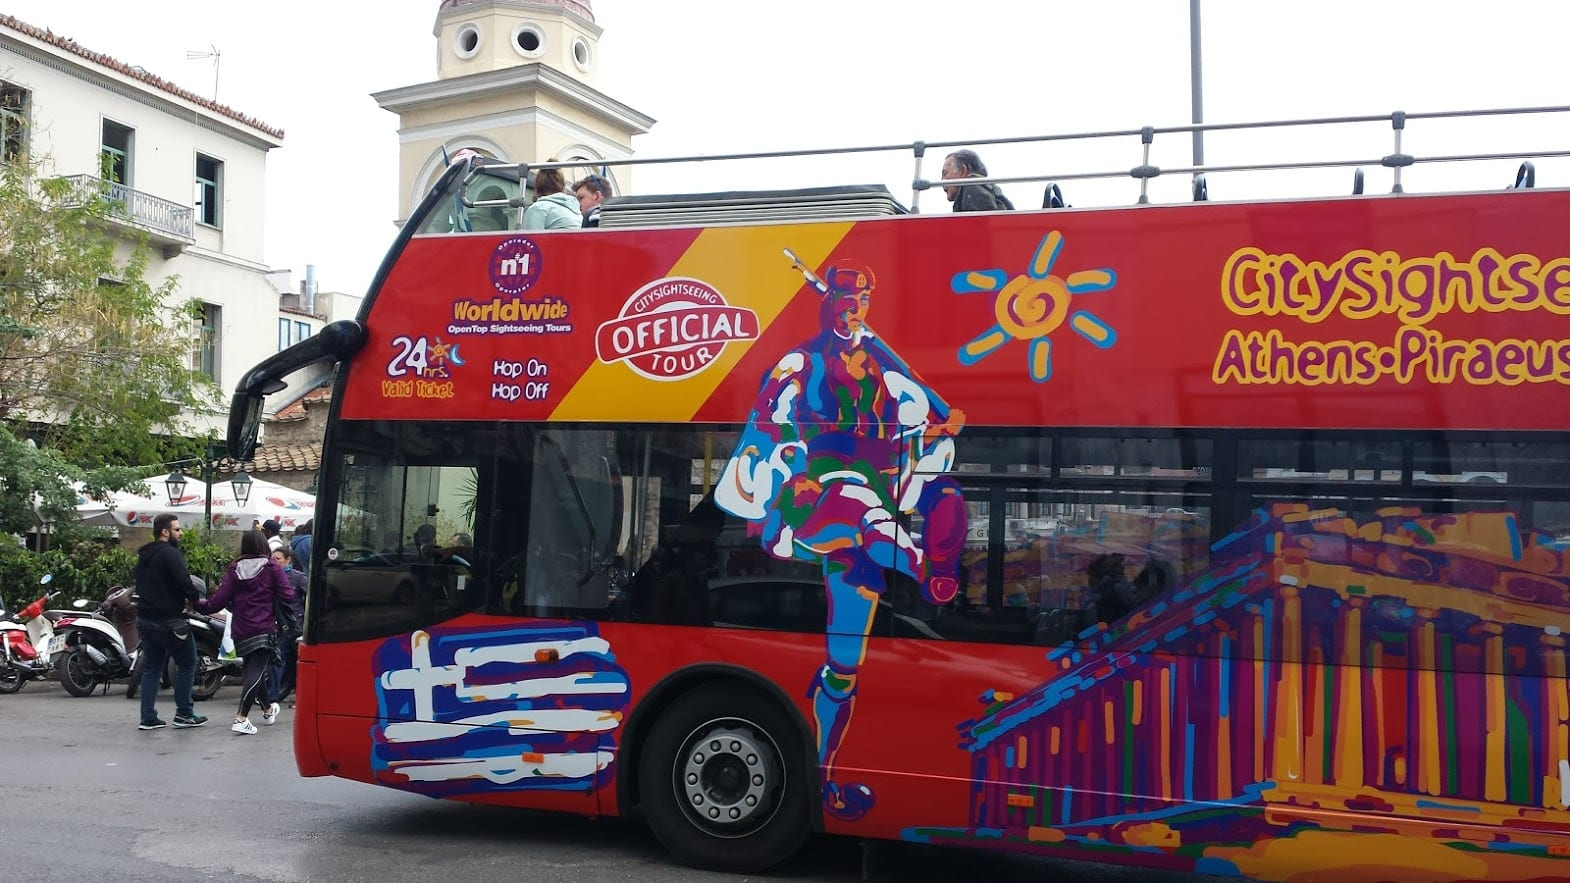 Go city sightseeing Athens with the hop on hop off bus